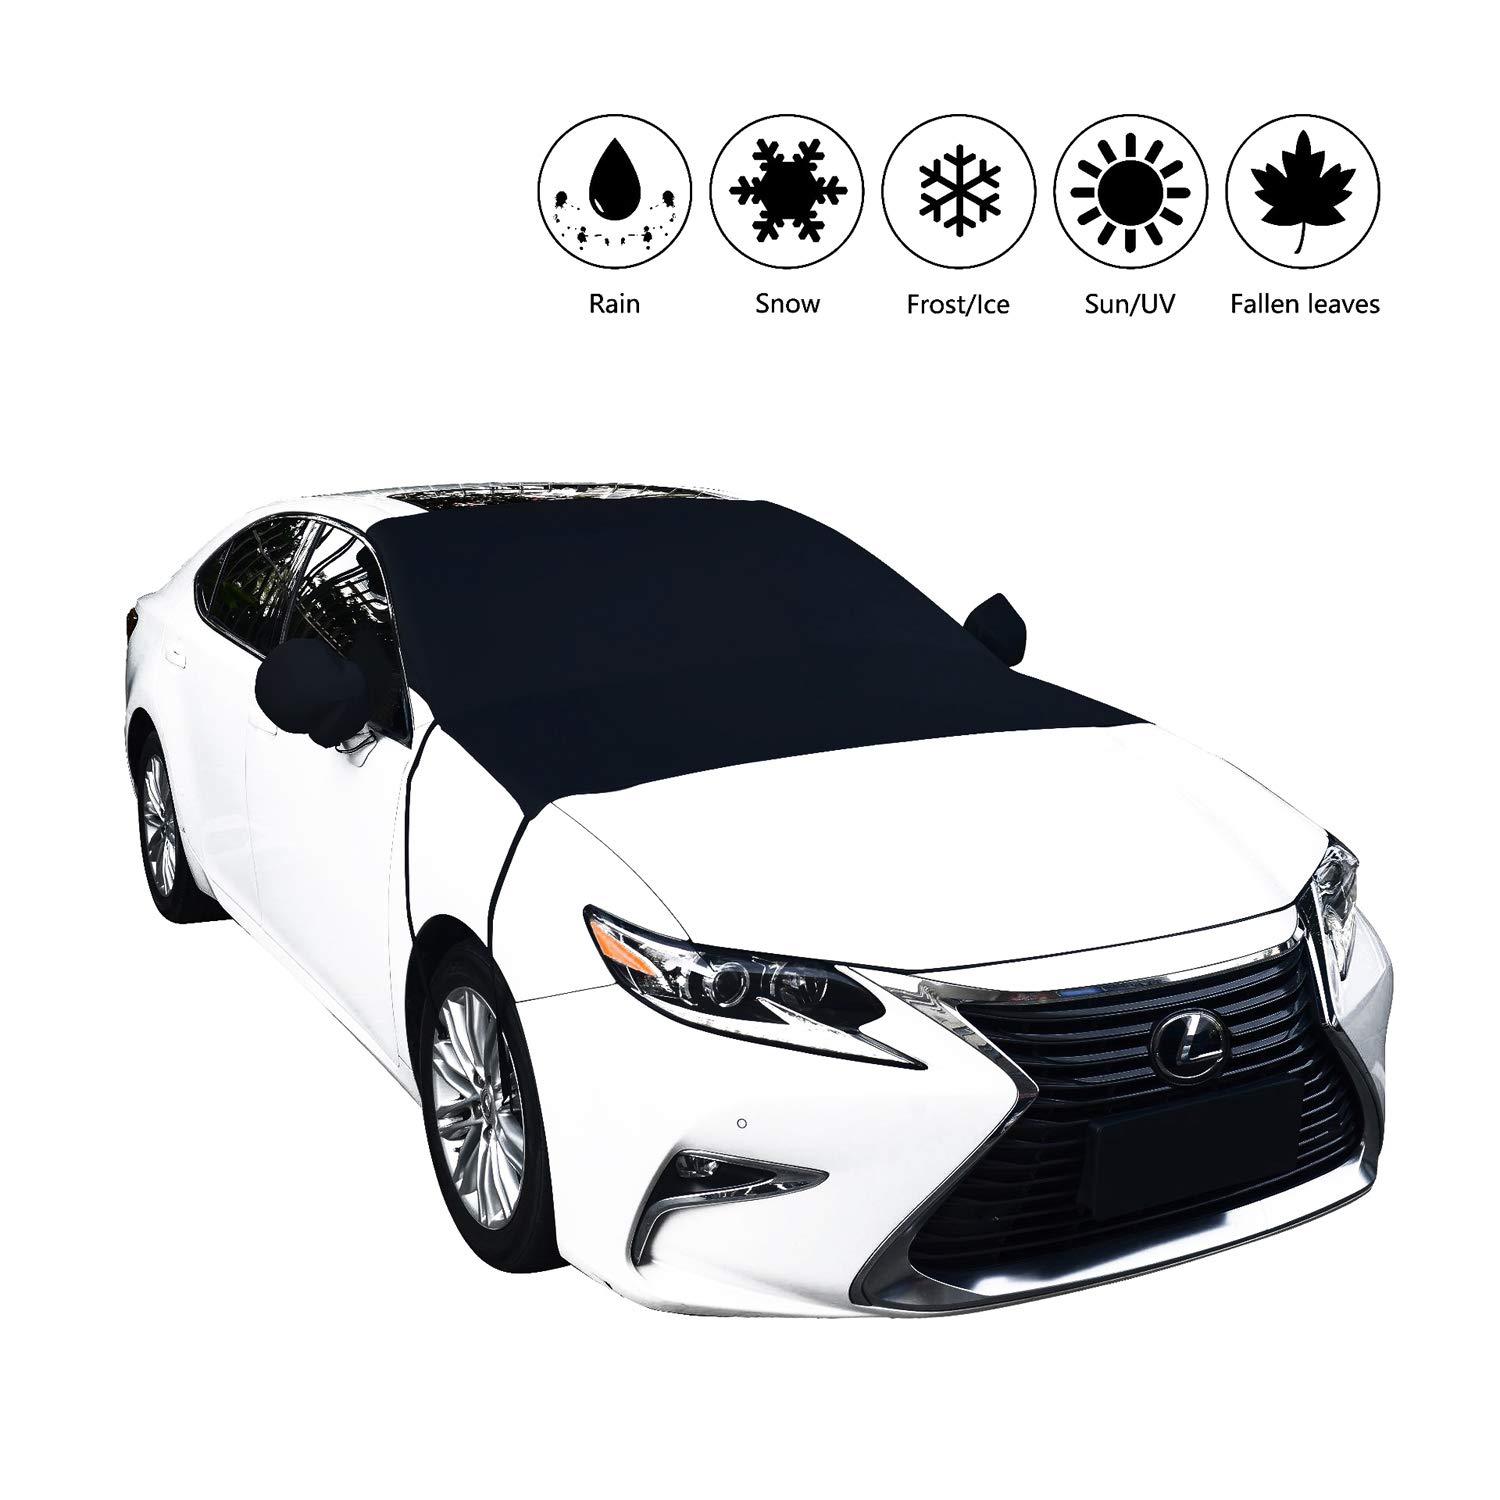 Car Windshield Snow Cover,Marrkey Winter Magnetic Snow, Ice and Frost Guard - Fits SUV, Truck & Car Windshields - Auto Windshield With Mirror Covers